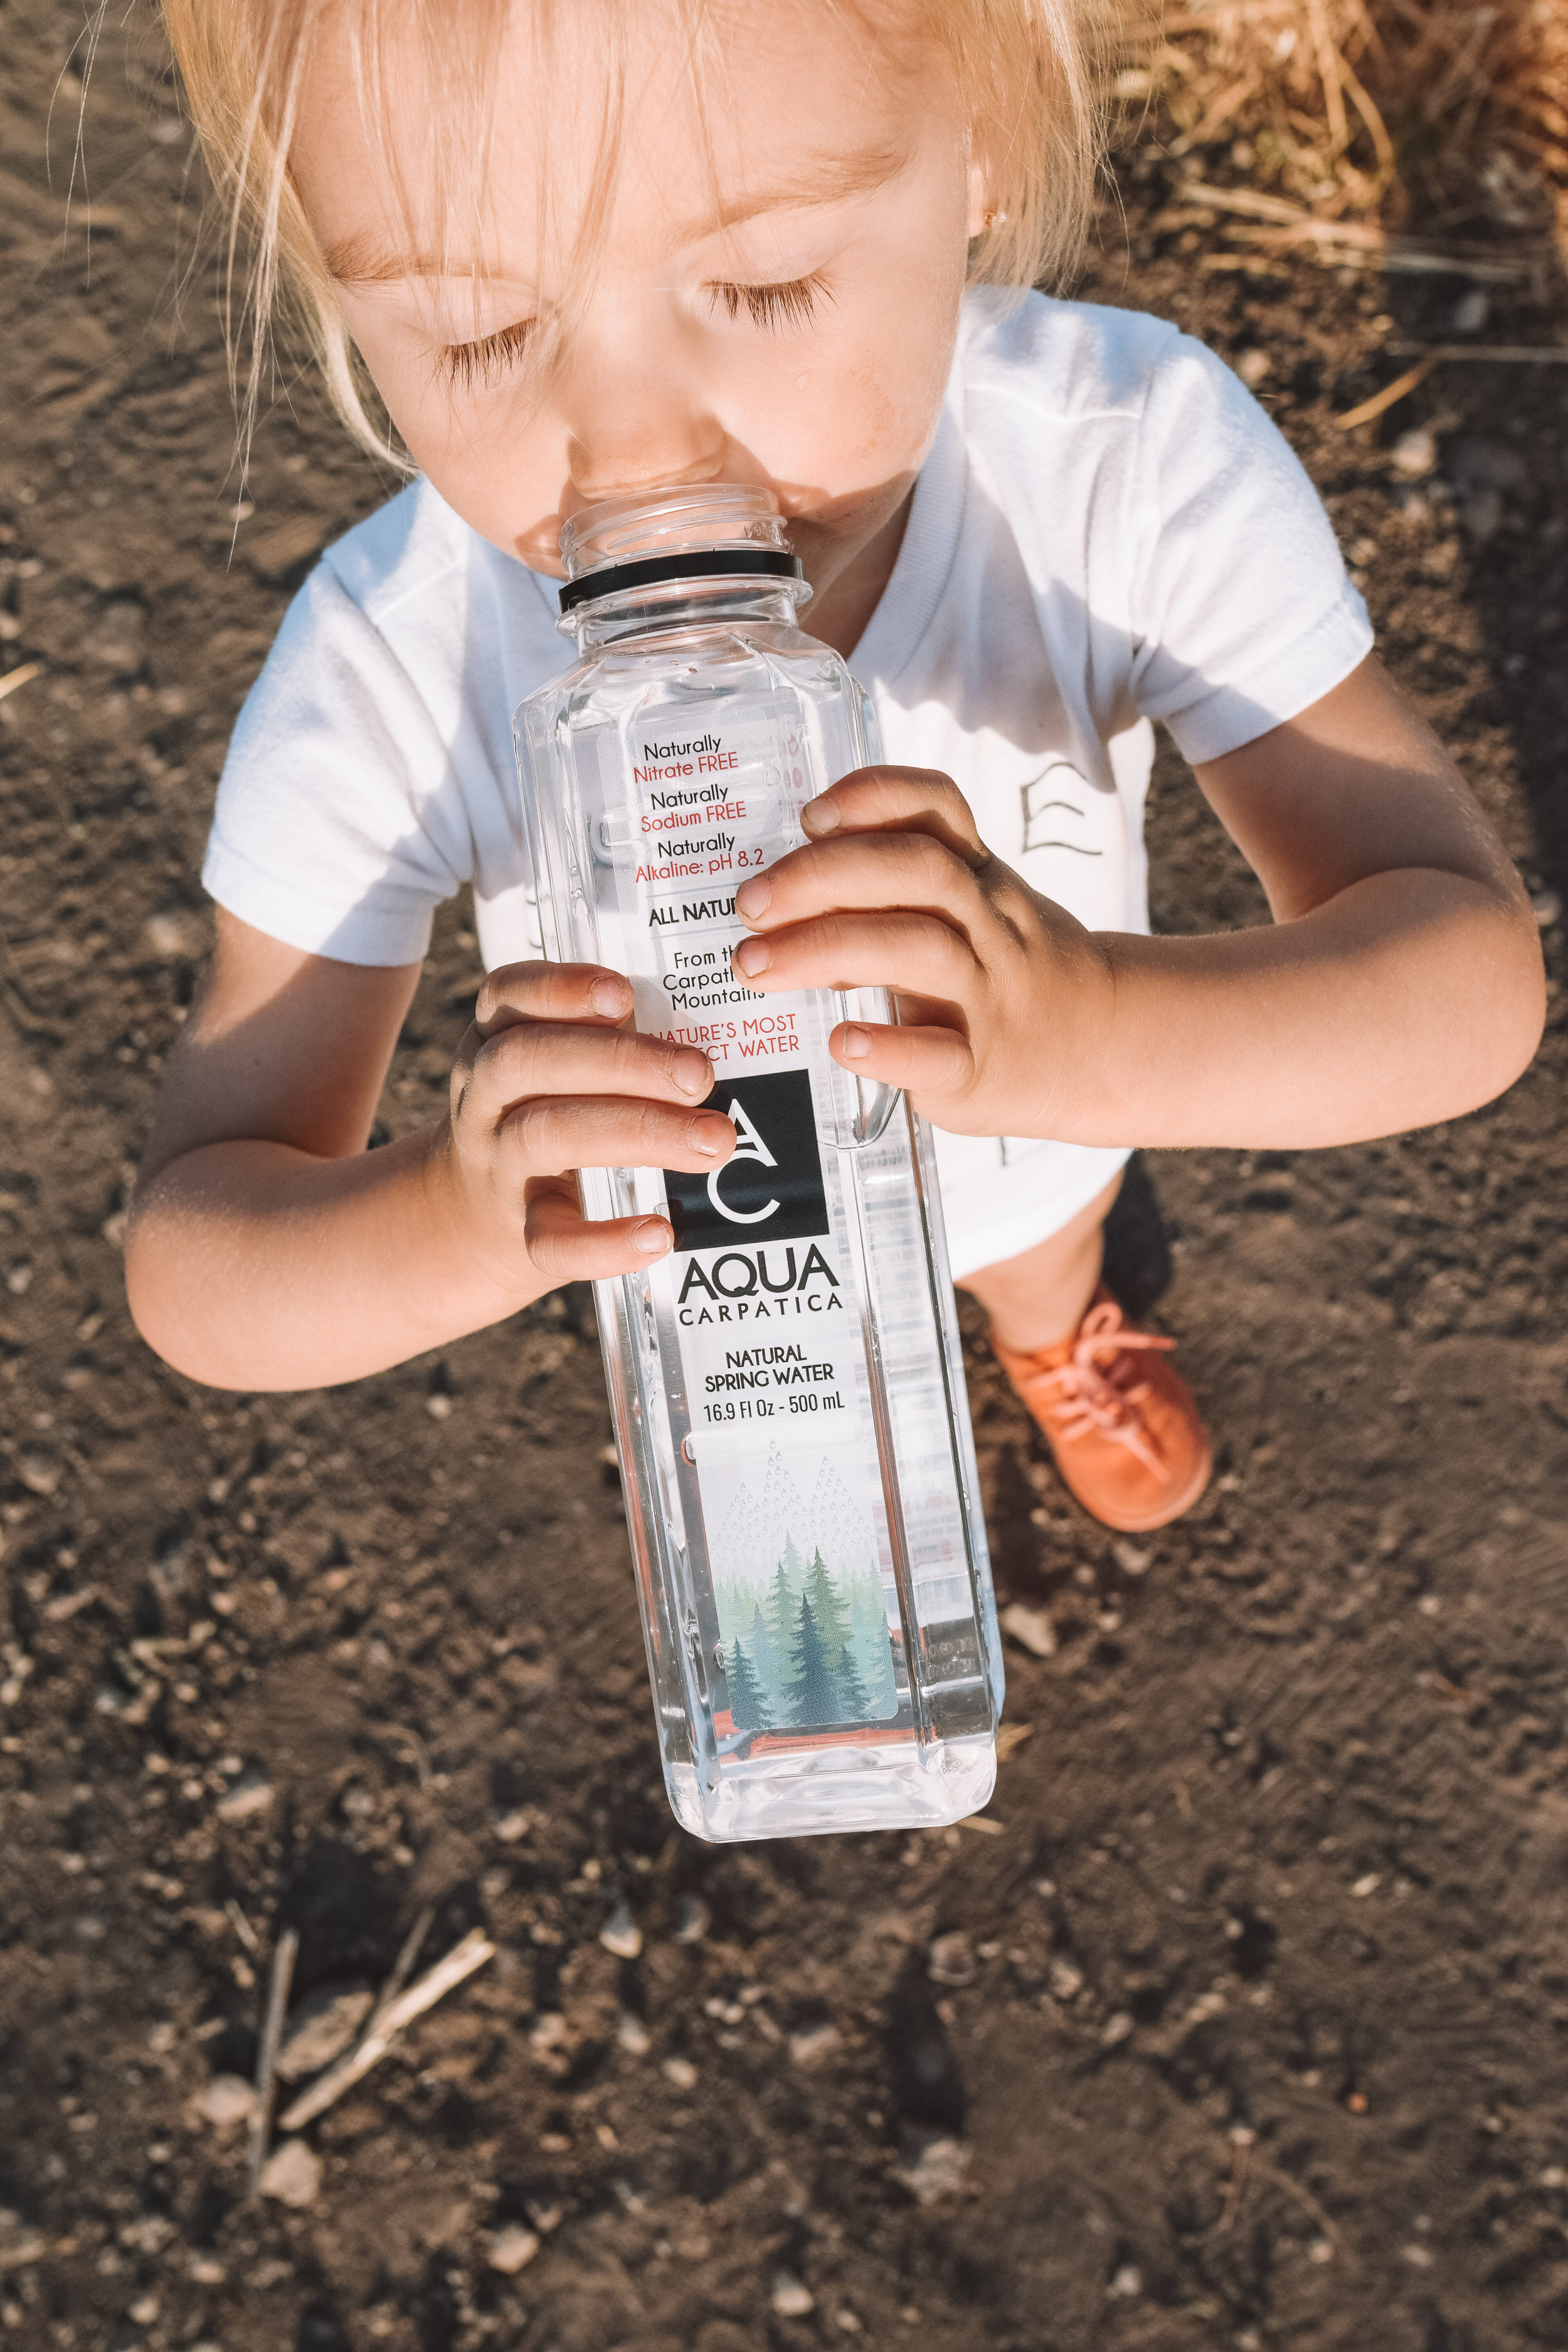 National Hydration Day - 4 Tips for Drinking more Water - AQUA Carpatica - Delicious Water Brands